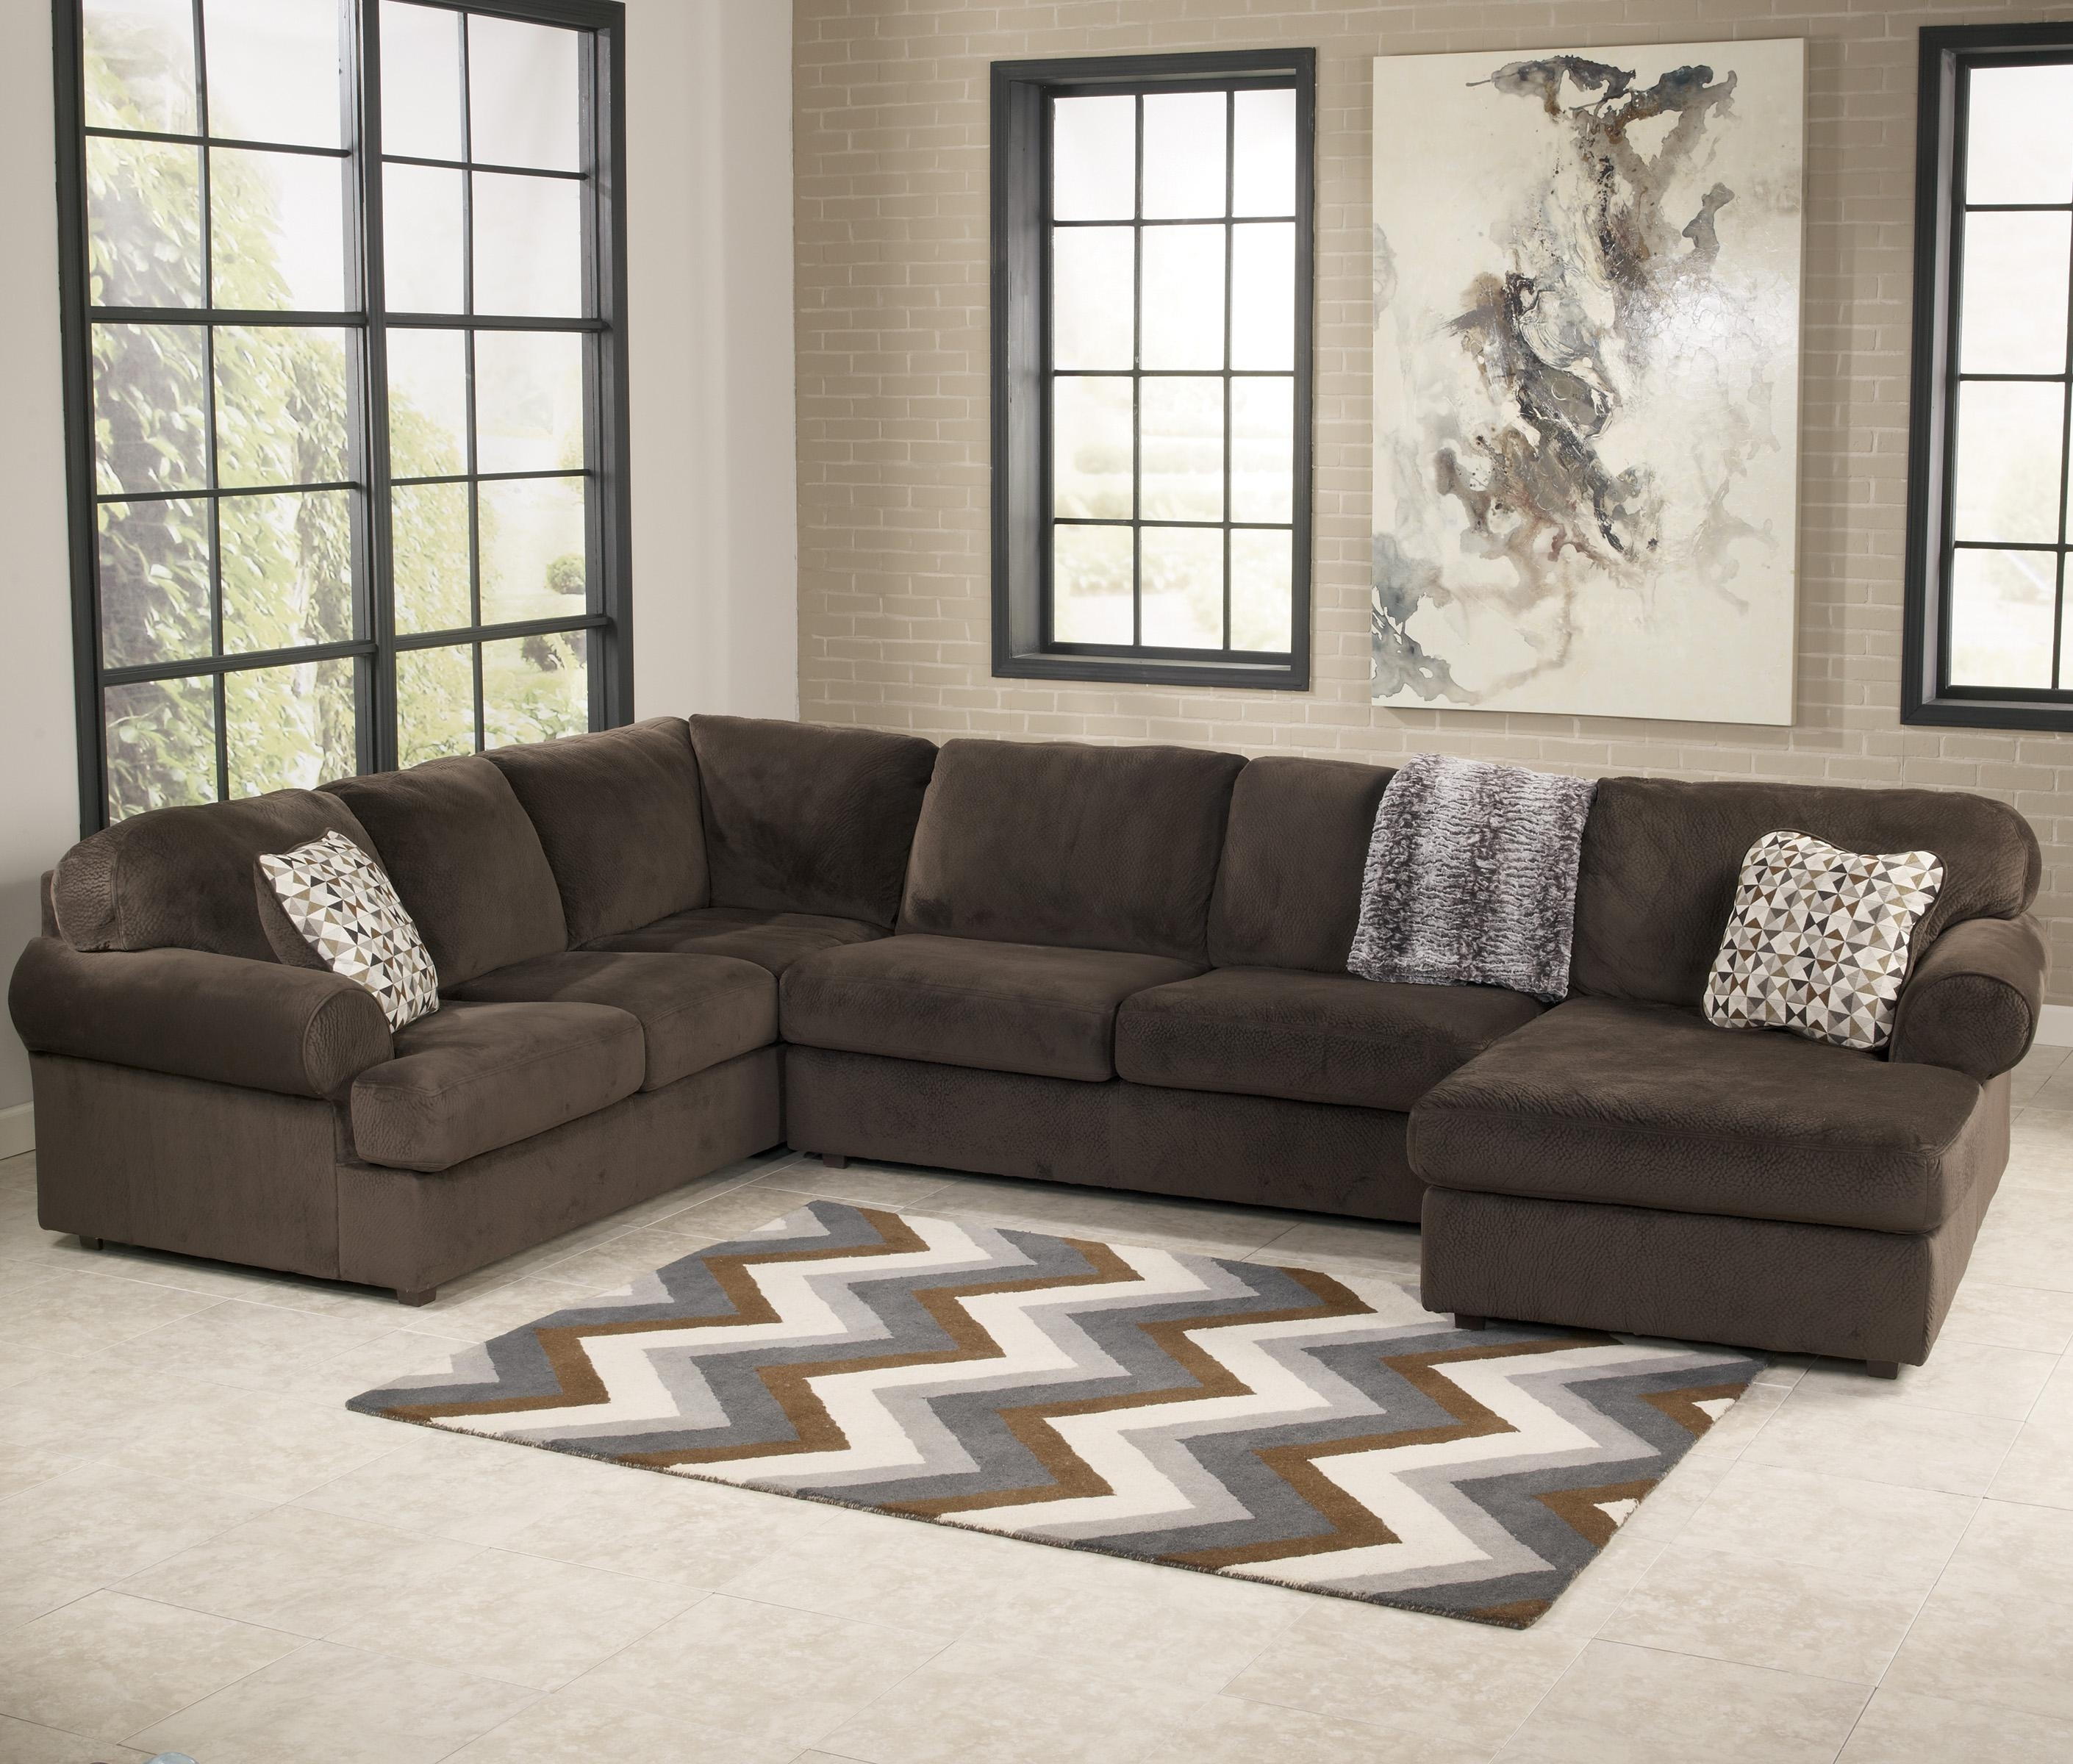 Signature Designashley Jessa Place – Chocolate Casual Sectional For Austin Sectional Sofas (View 3 of 10)